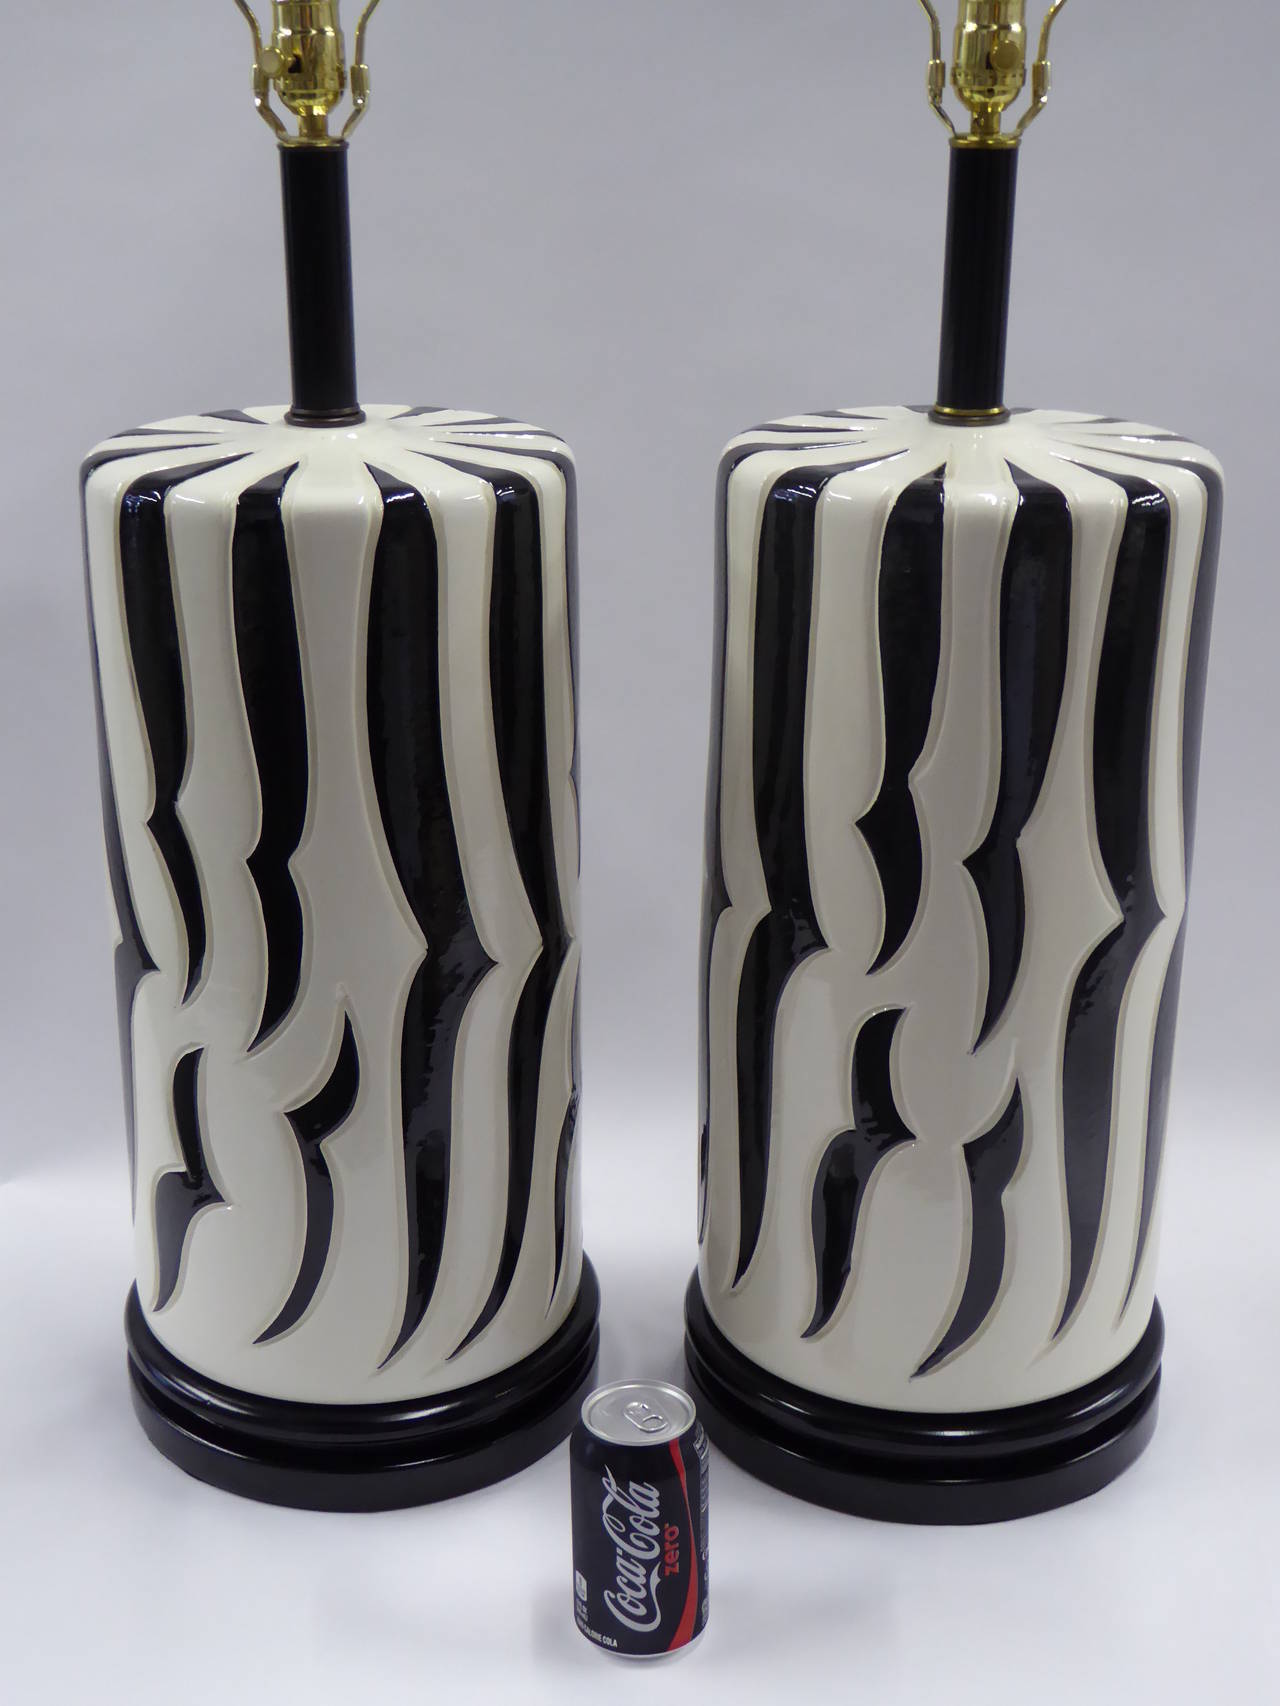 Exhibiting the exotic and luxe exuberant style of Tony Duquette, this pair of monumental scale table lamps with stylized incised zebra stripes has a wonderful presence and scale. As important room anchors, the black and white quite graphic. The